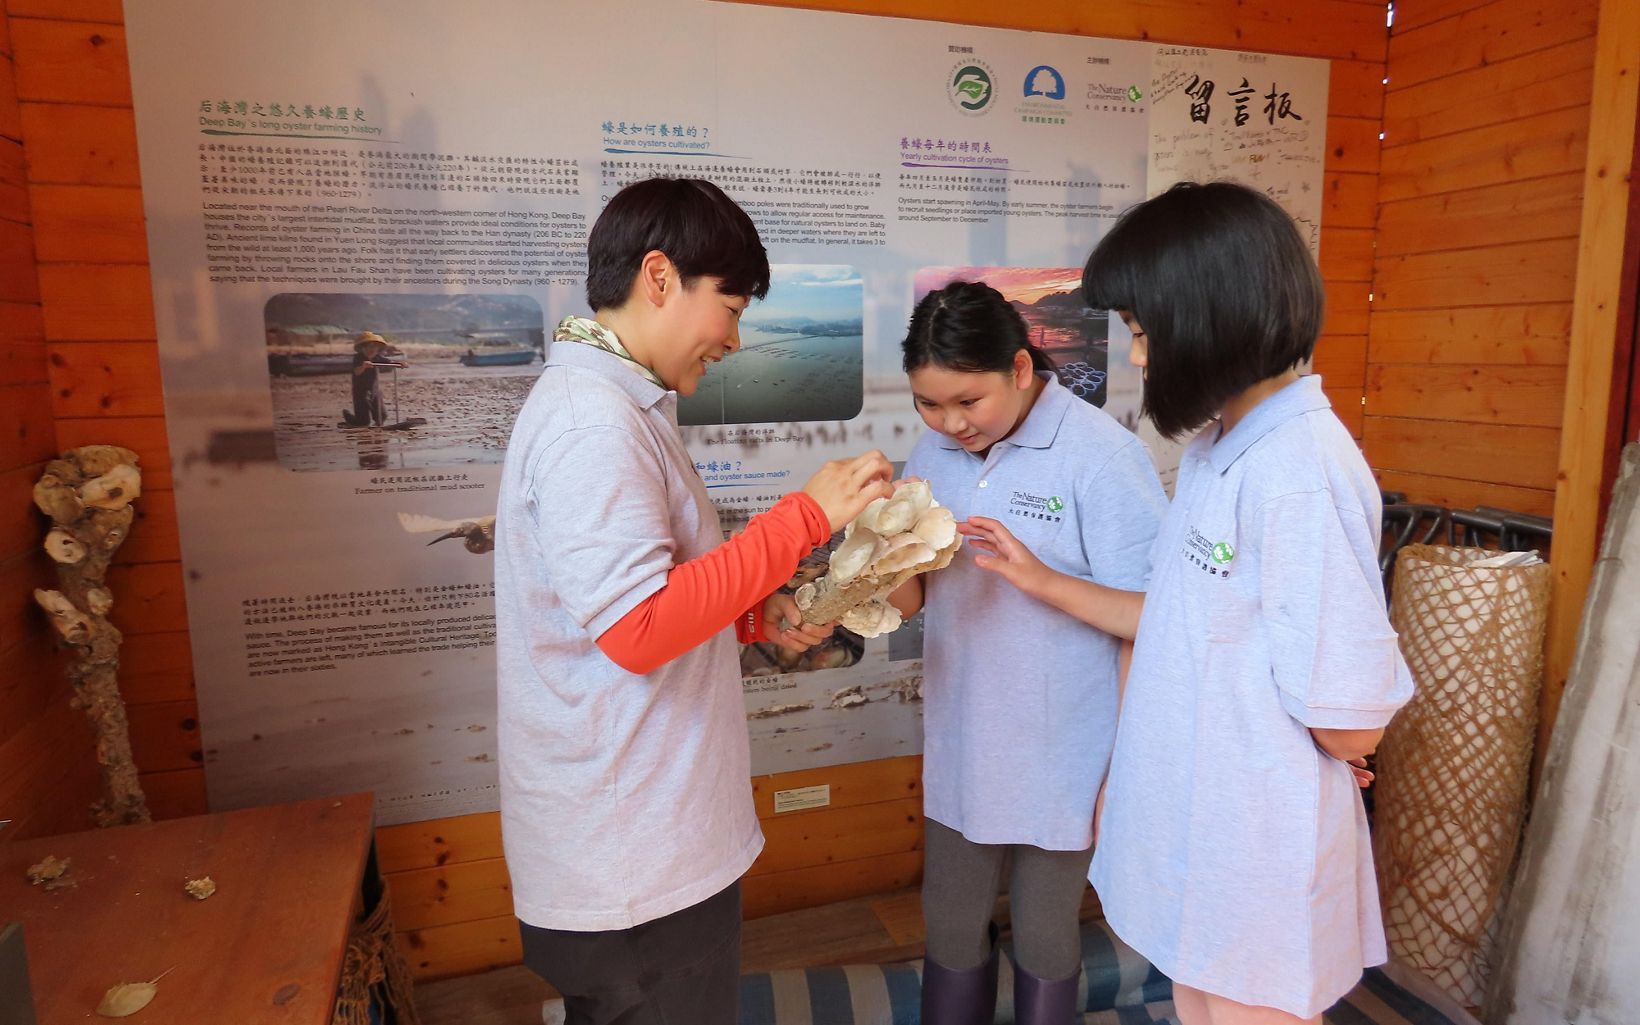 A group of young women study a cluster of oyster shells inside the exhibit.